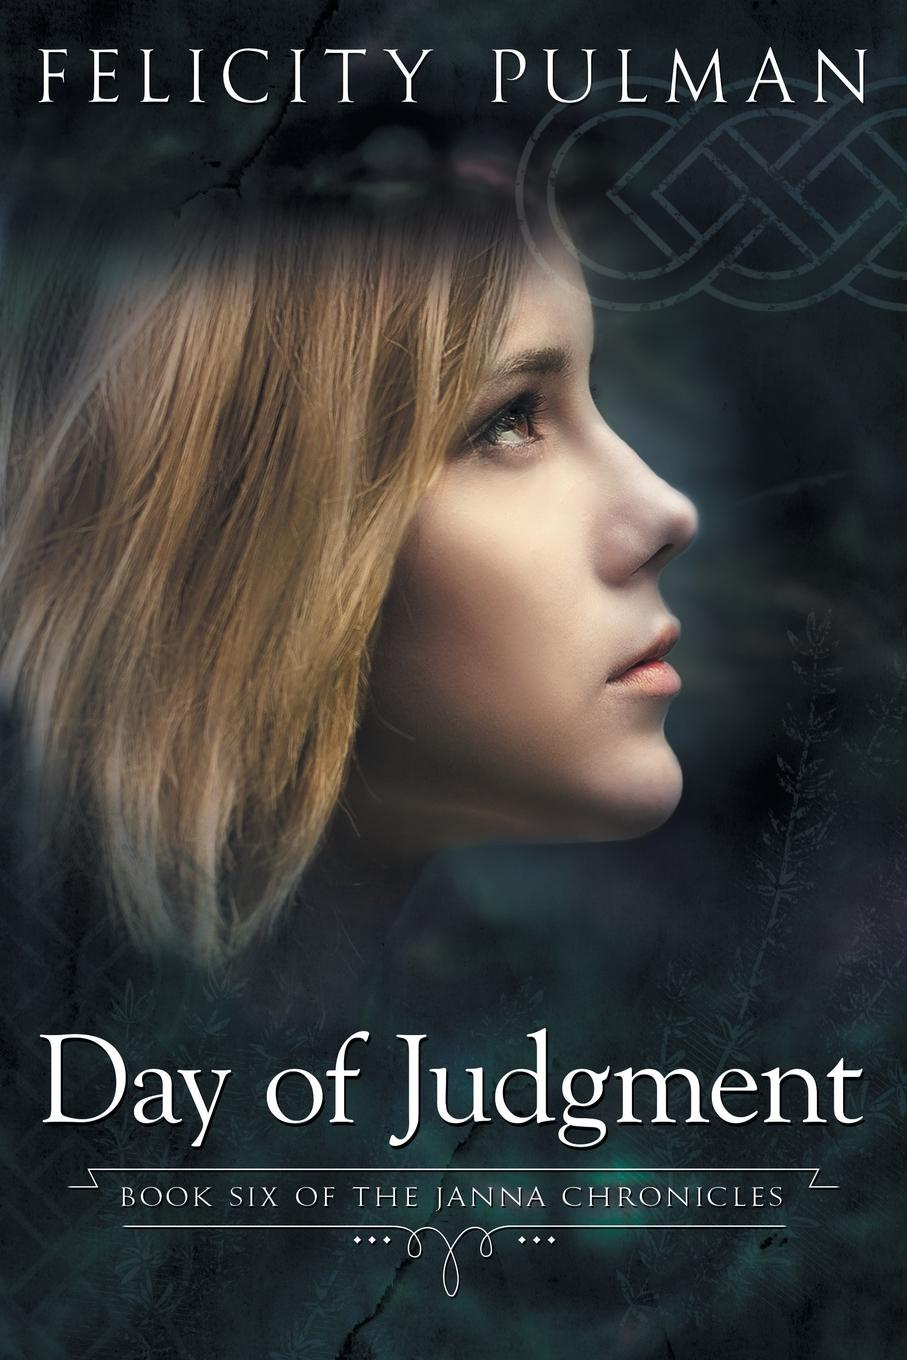 Фото - Felicity Pulman Day of Judgment. The Janna Chronicles 6 anthony marsh the groom s secret handbook how not to screw up the biggest day of her life